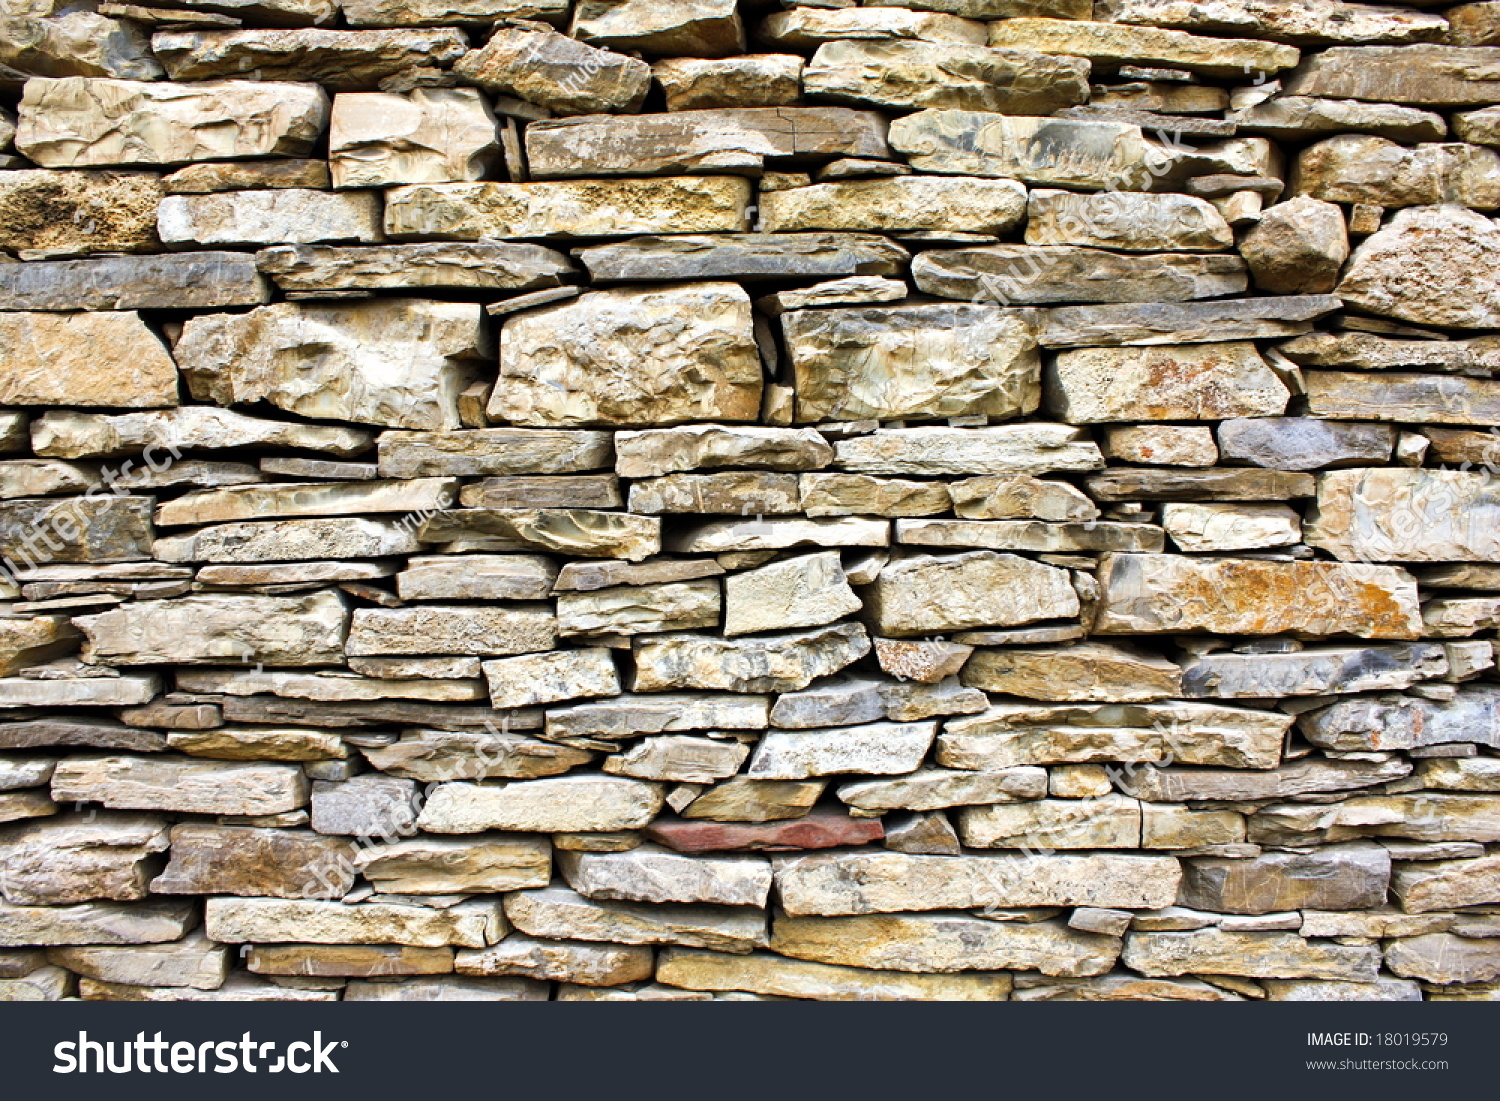 High Res Stone : Stone wall texture hi res stock photo shutterstock